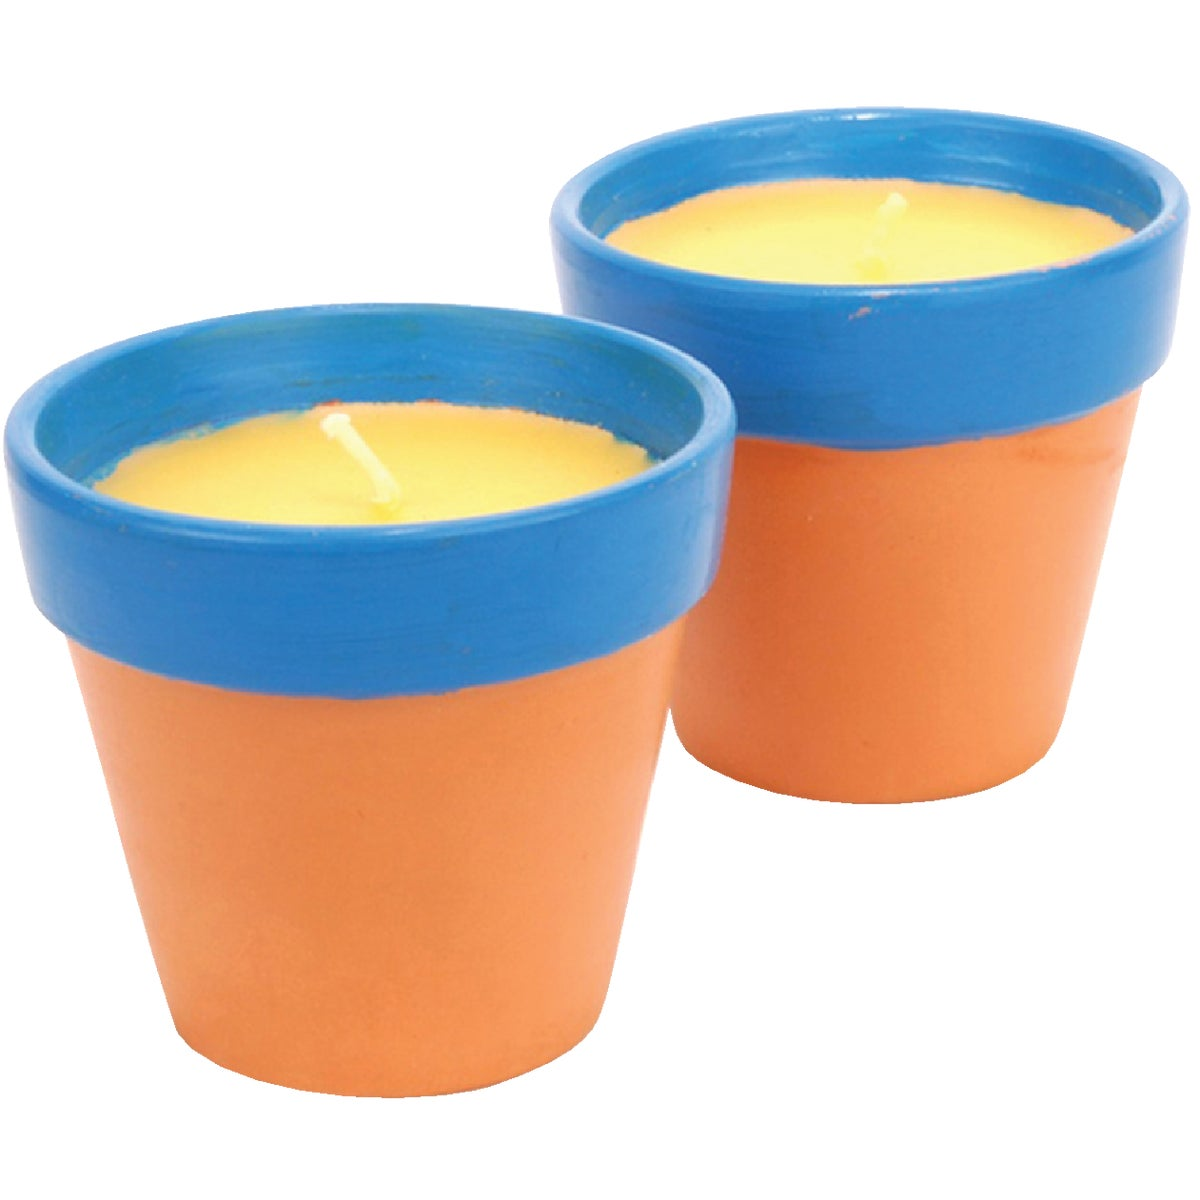 2PK TERRA CITRO CANDLE - JTPC2412 by Jay Trends